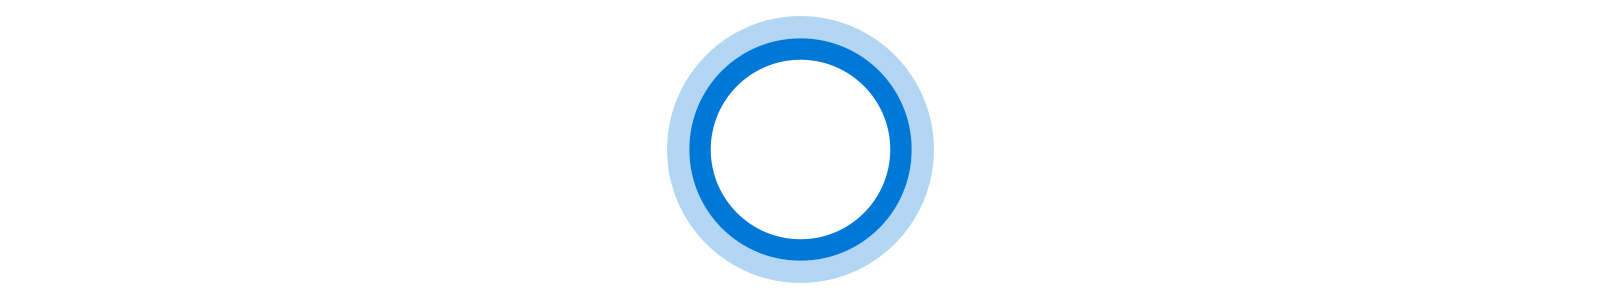 Ícone animado da Cortana